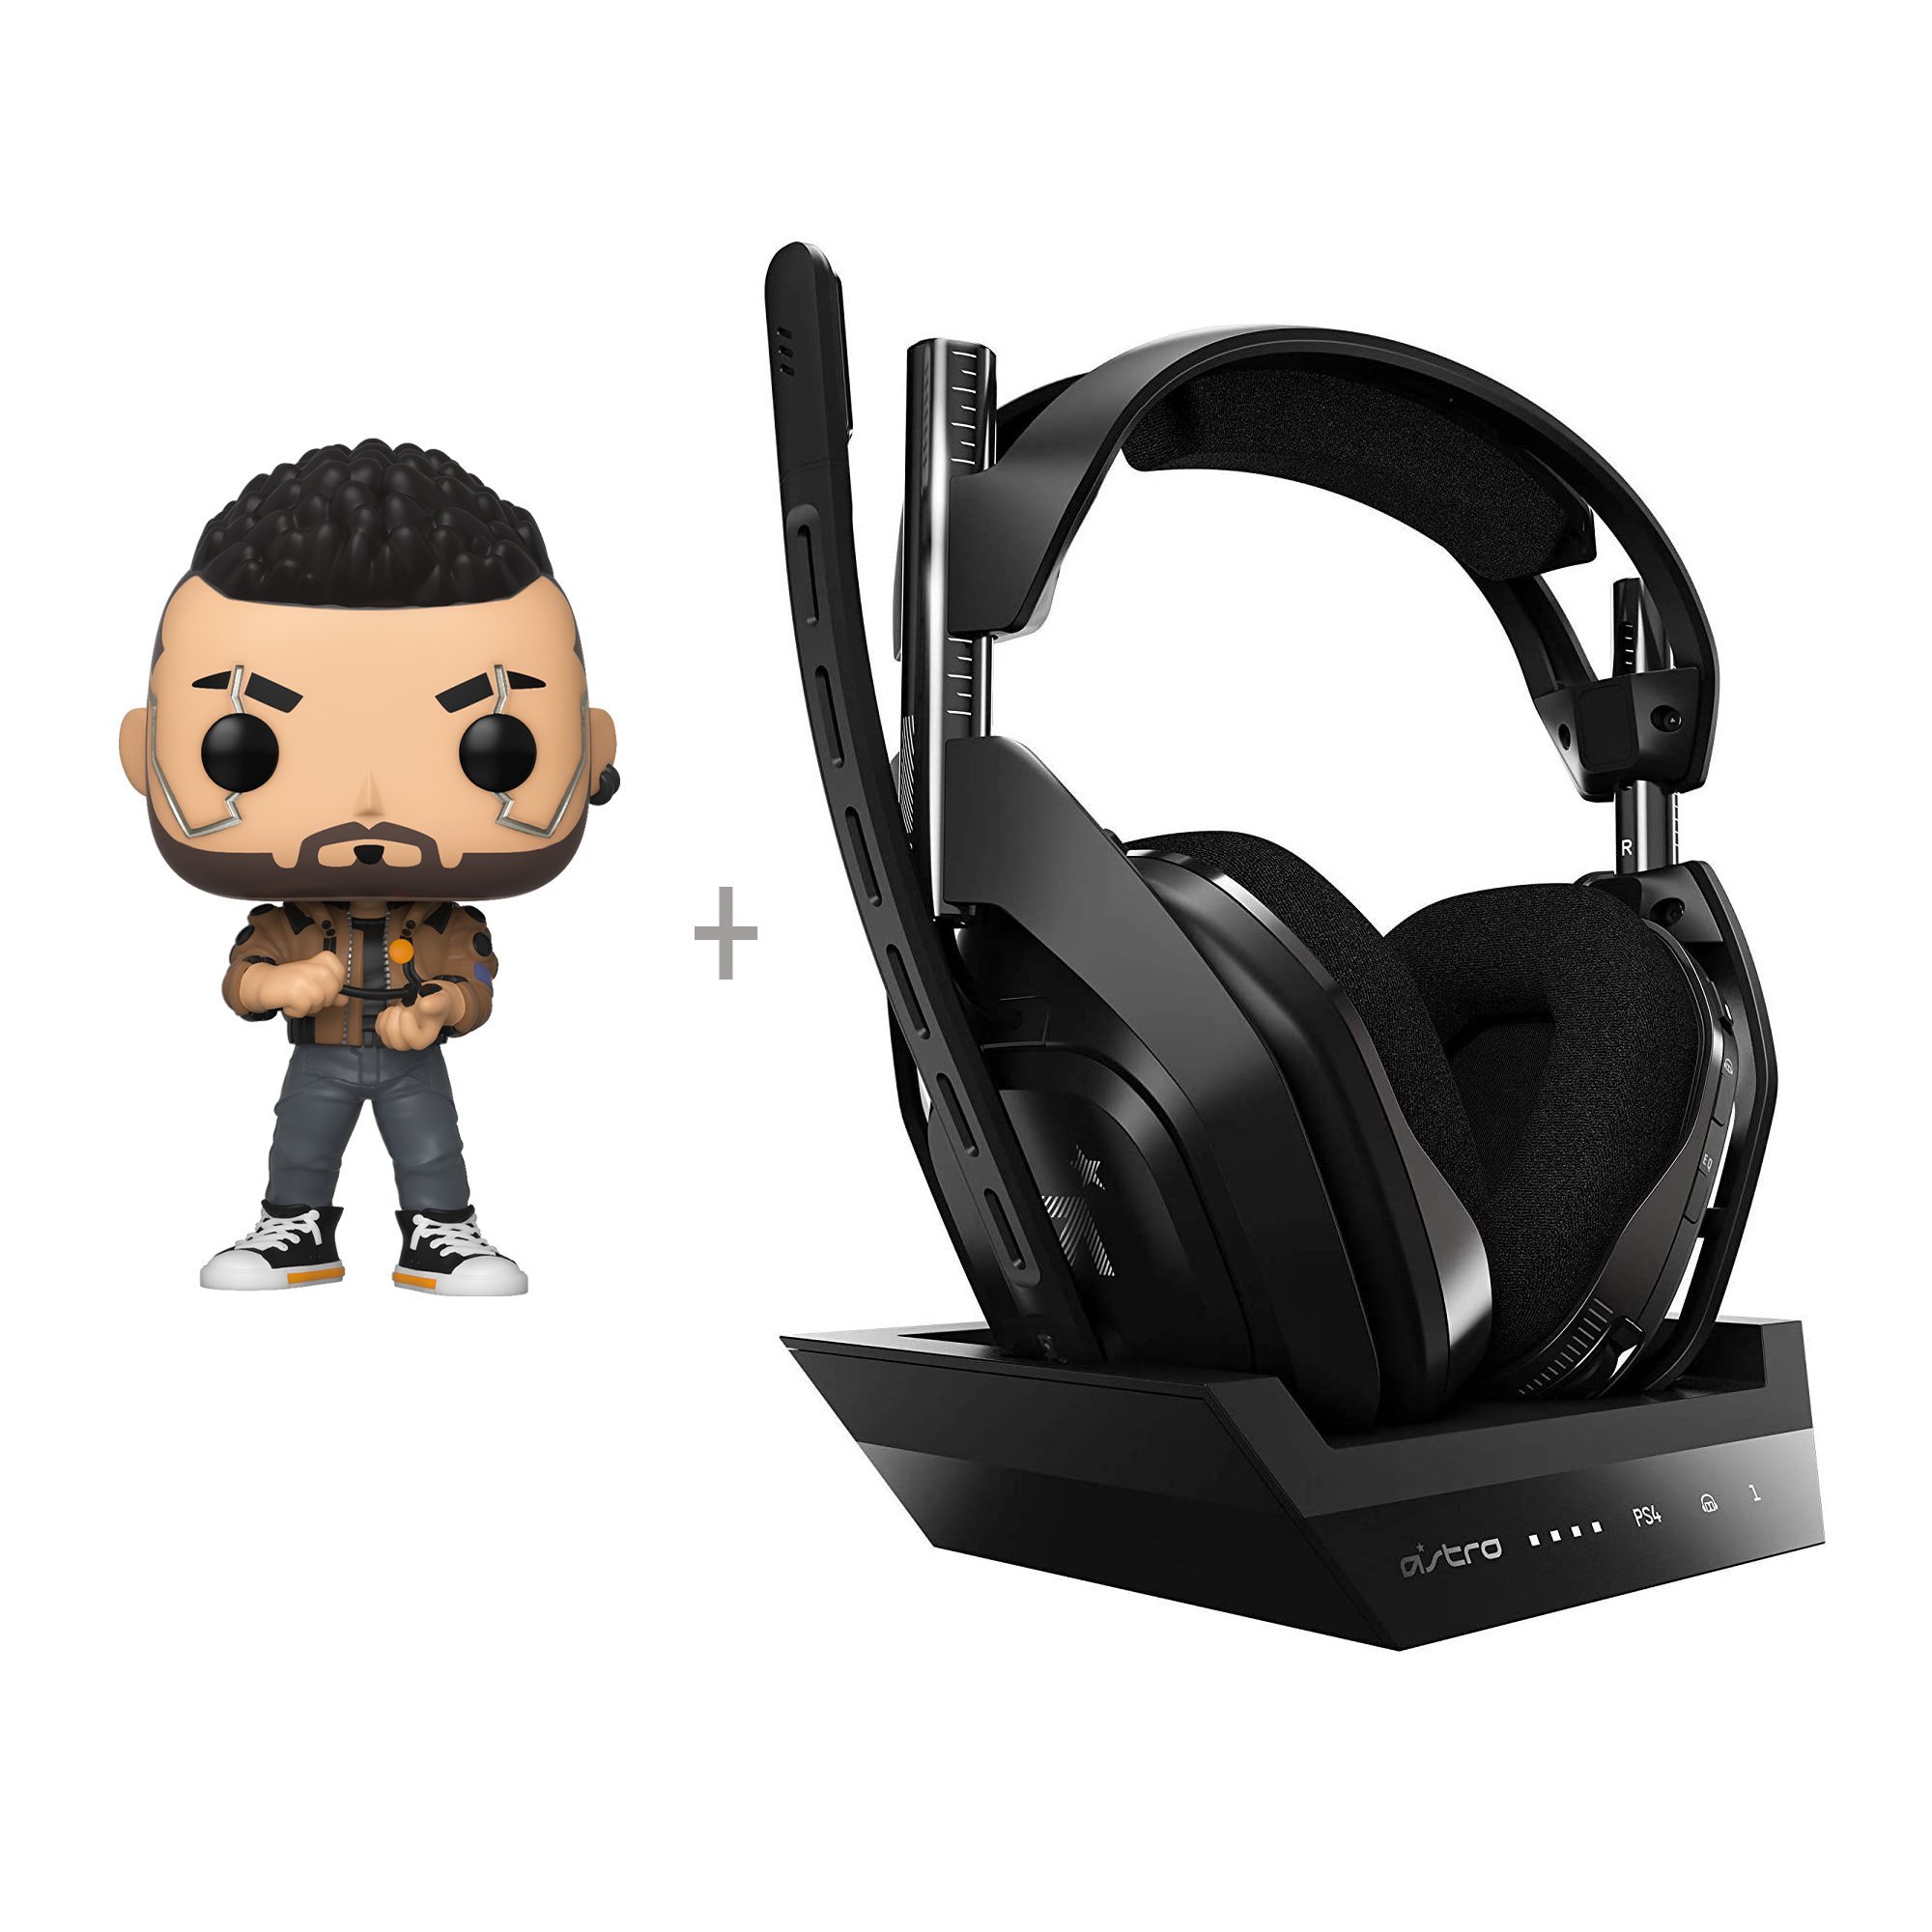 Astro - A50 Wireless + Base Station for PlayStation® 4/PC + Funko! POP - Games: Cyberpunk 2077 - V-Male (47159) - Bundle